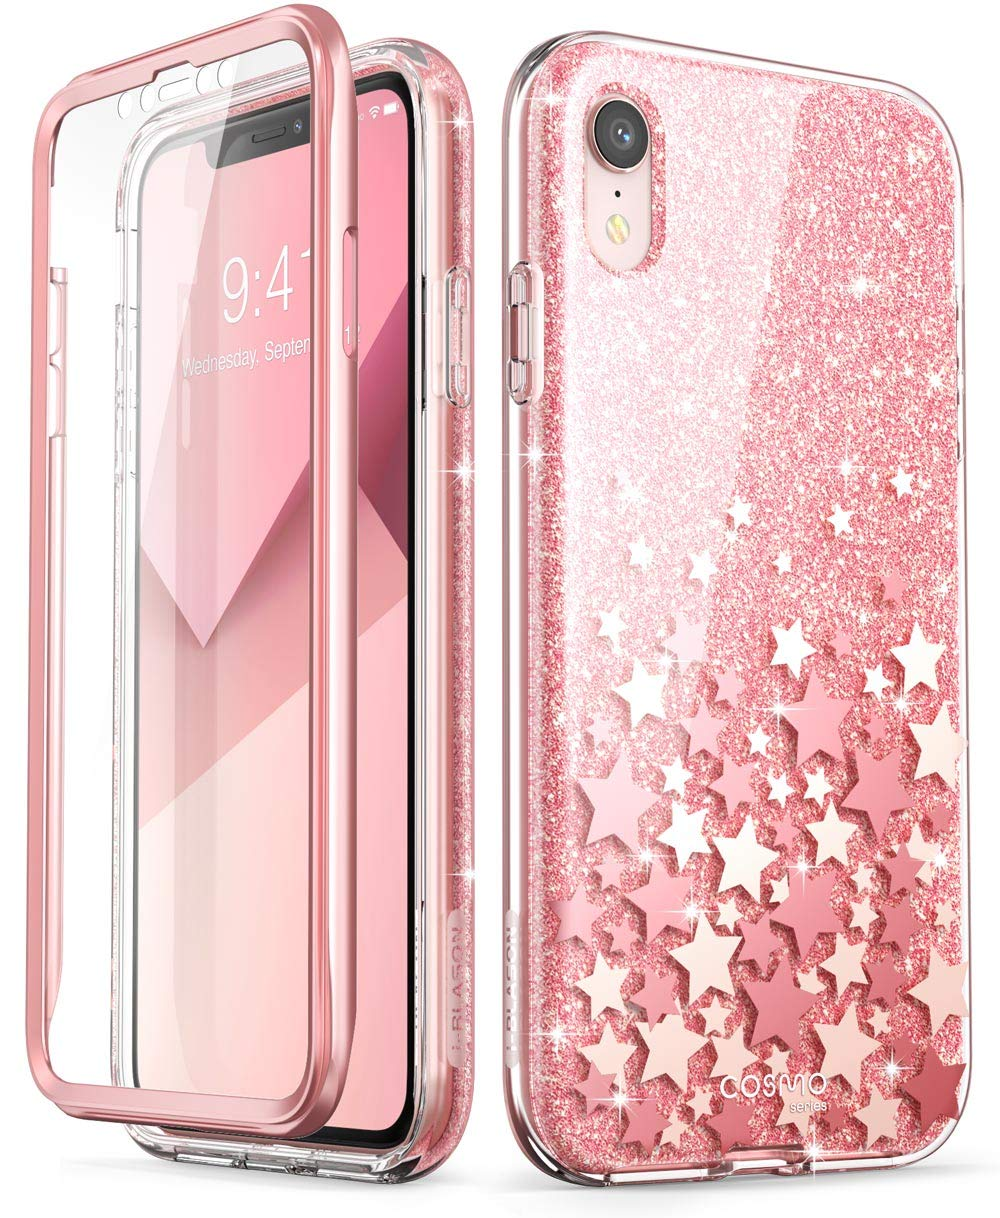 iPhone XR Case, [Built-in Screen Protector] i-Blason [Cosmo] Full-Body Glitter Bumper Case for iPhone XR 6.1 Inch 2018 Release (Pink) i-Blason inc iPhoneXR-6.1-Cosmo-SP-Pink